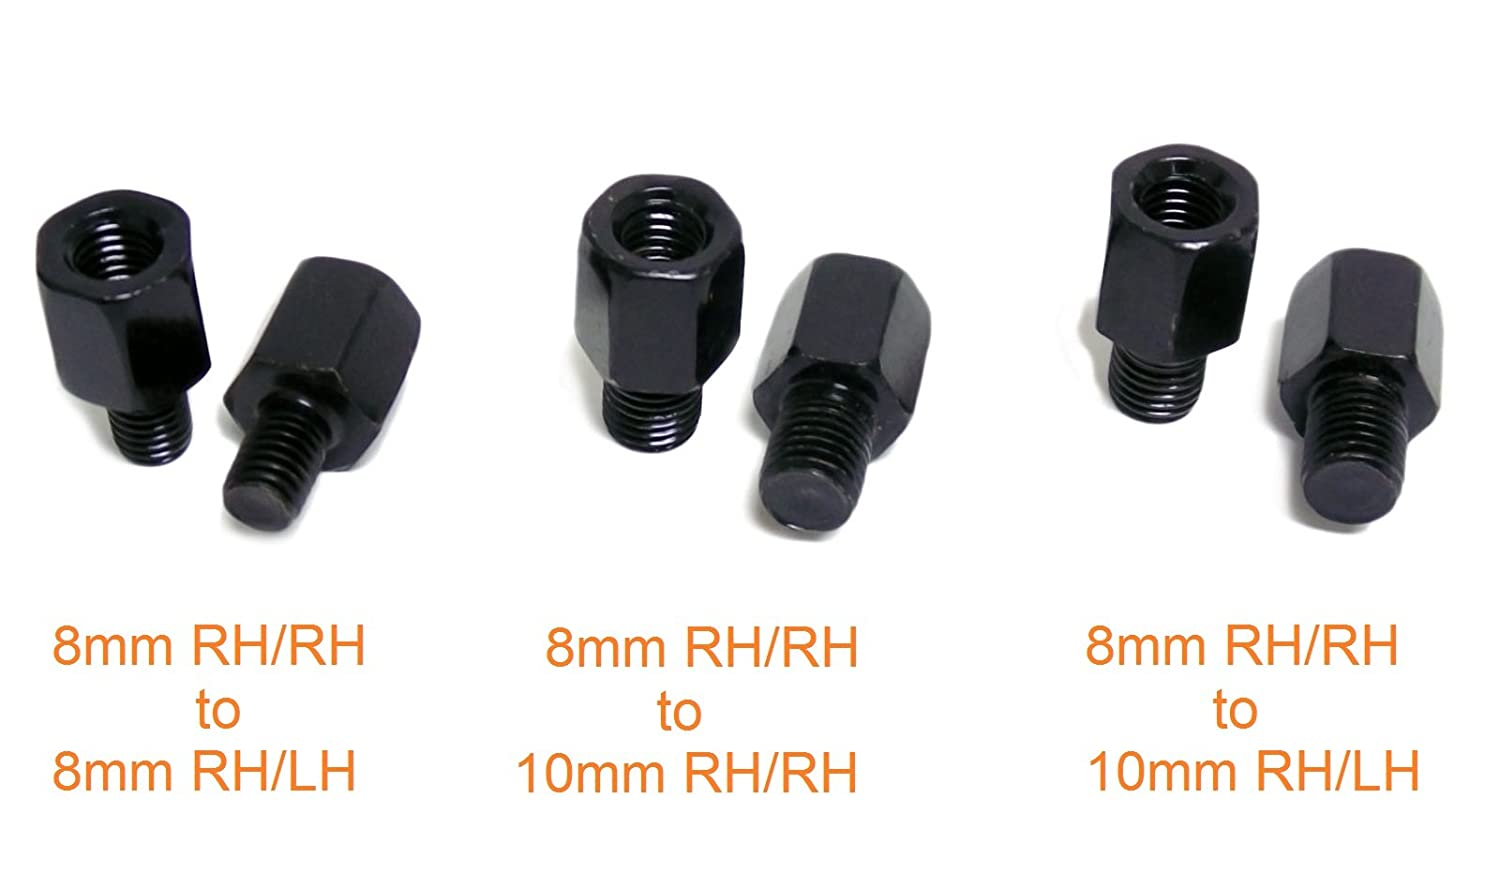 Includes Conversion Adapter Kit to 10mm and Both RH//RH and RH//LH Thread Flat Black MMG Powersports Adjustable Mirror Set 4237 for mid-size Motorcycles Scooters 8mm RH//RH Thread